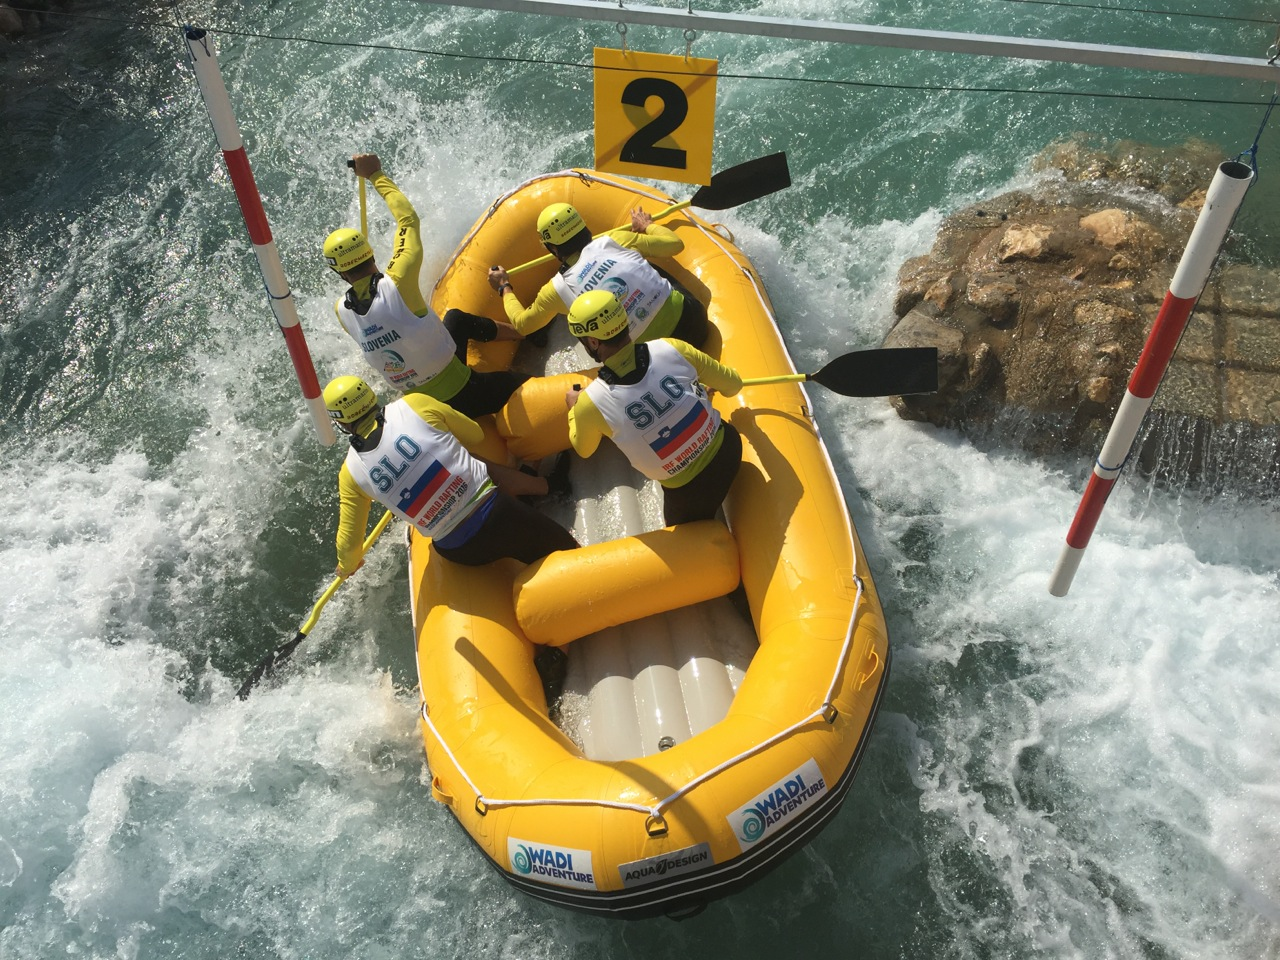 aquadesign-championnat-du-monde-rafting-2016-blog-4